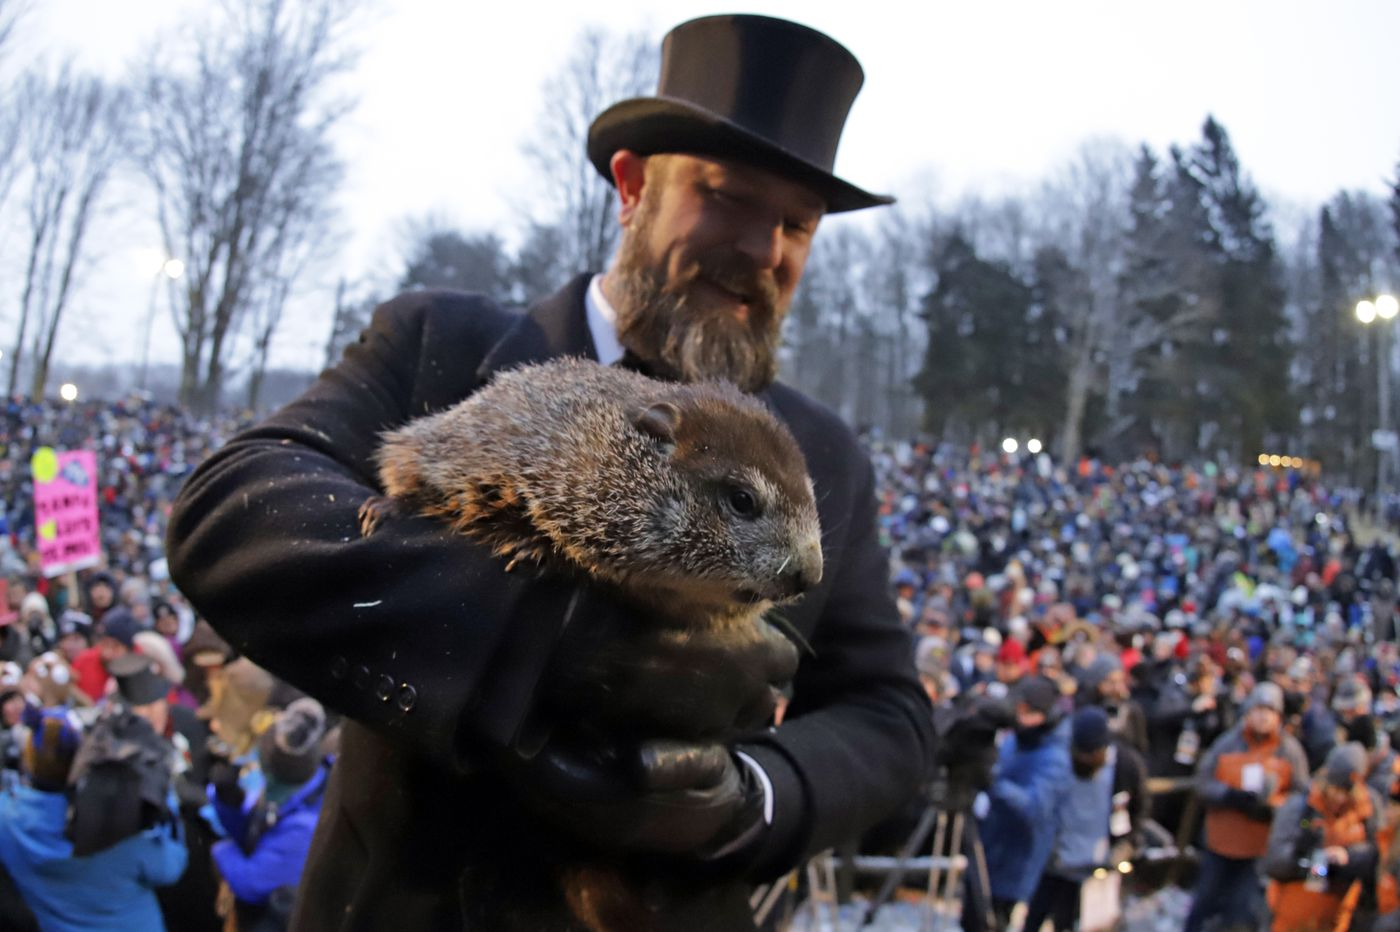 As Punxsutawney Phil predicts spring is near, winter is nowhere in sight, real forecasters say